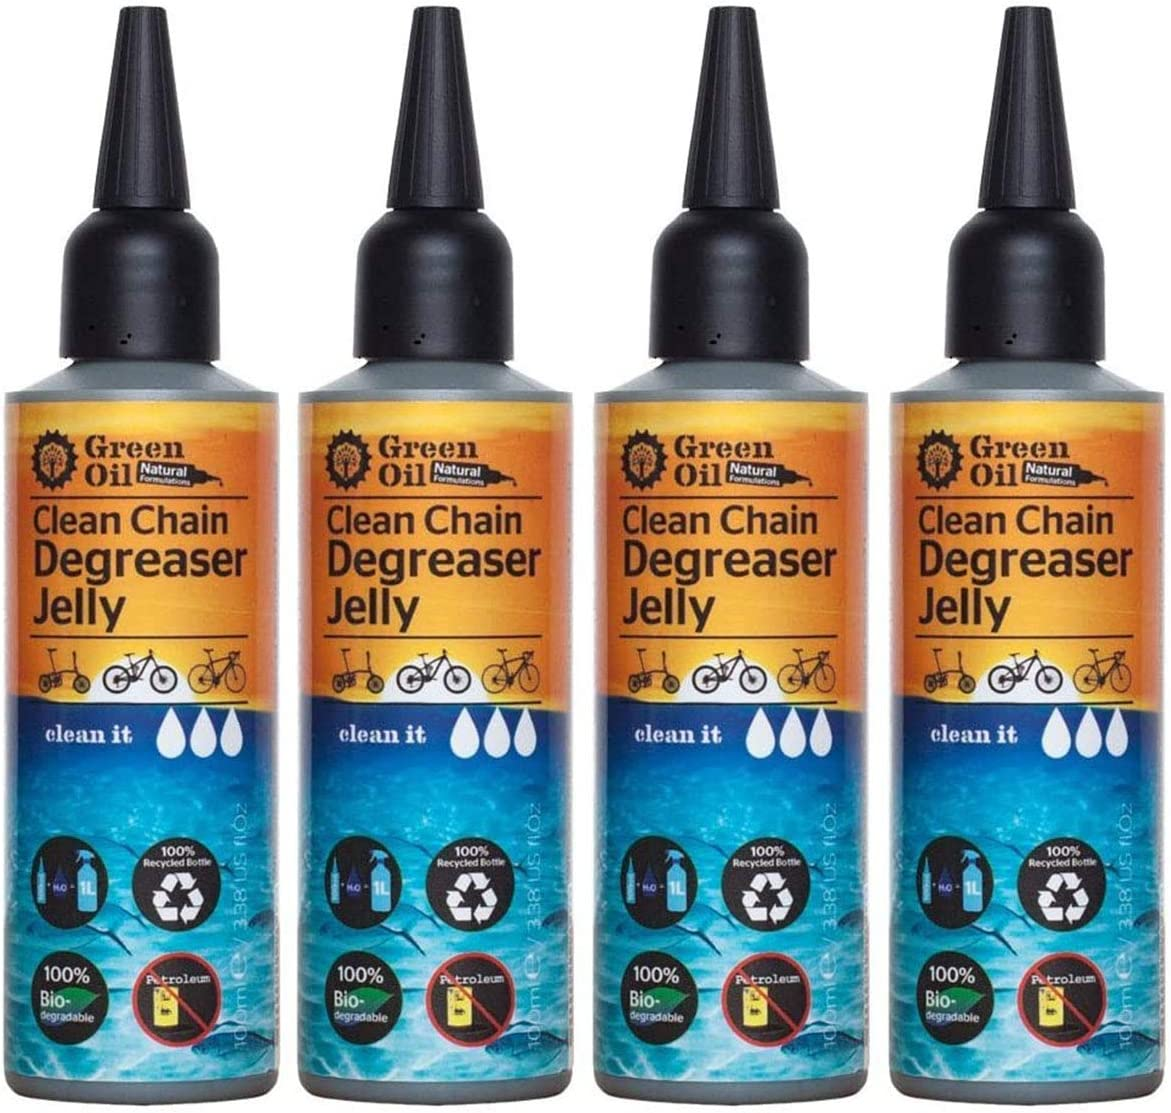 Green Oil Clean Chain Cycle Super special price Natu Biodegradable Jelly Degreaser Max 78% OFF